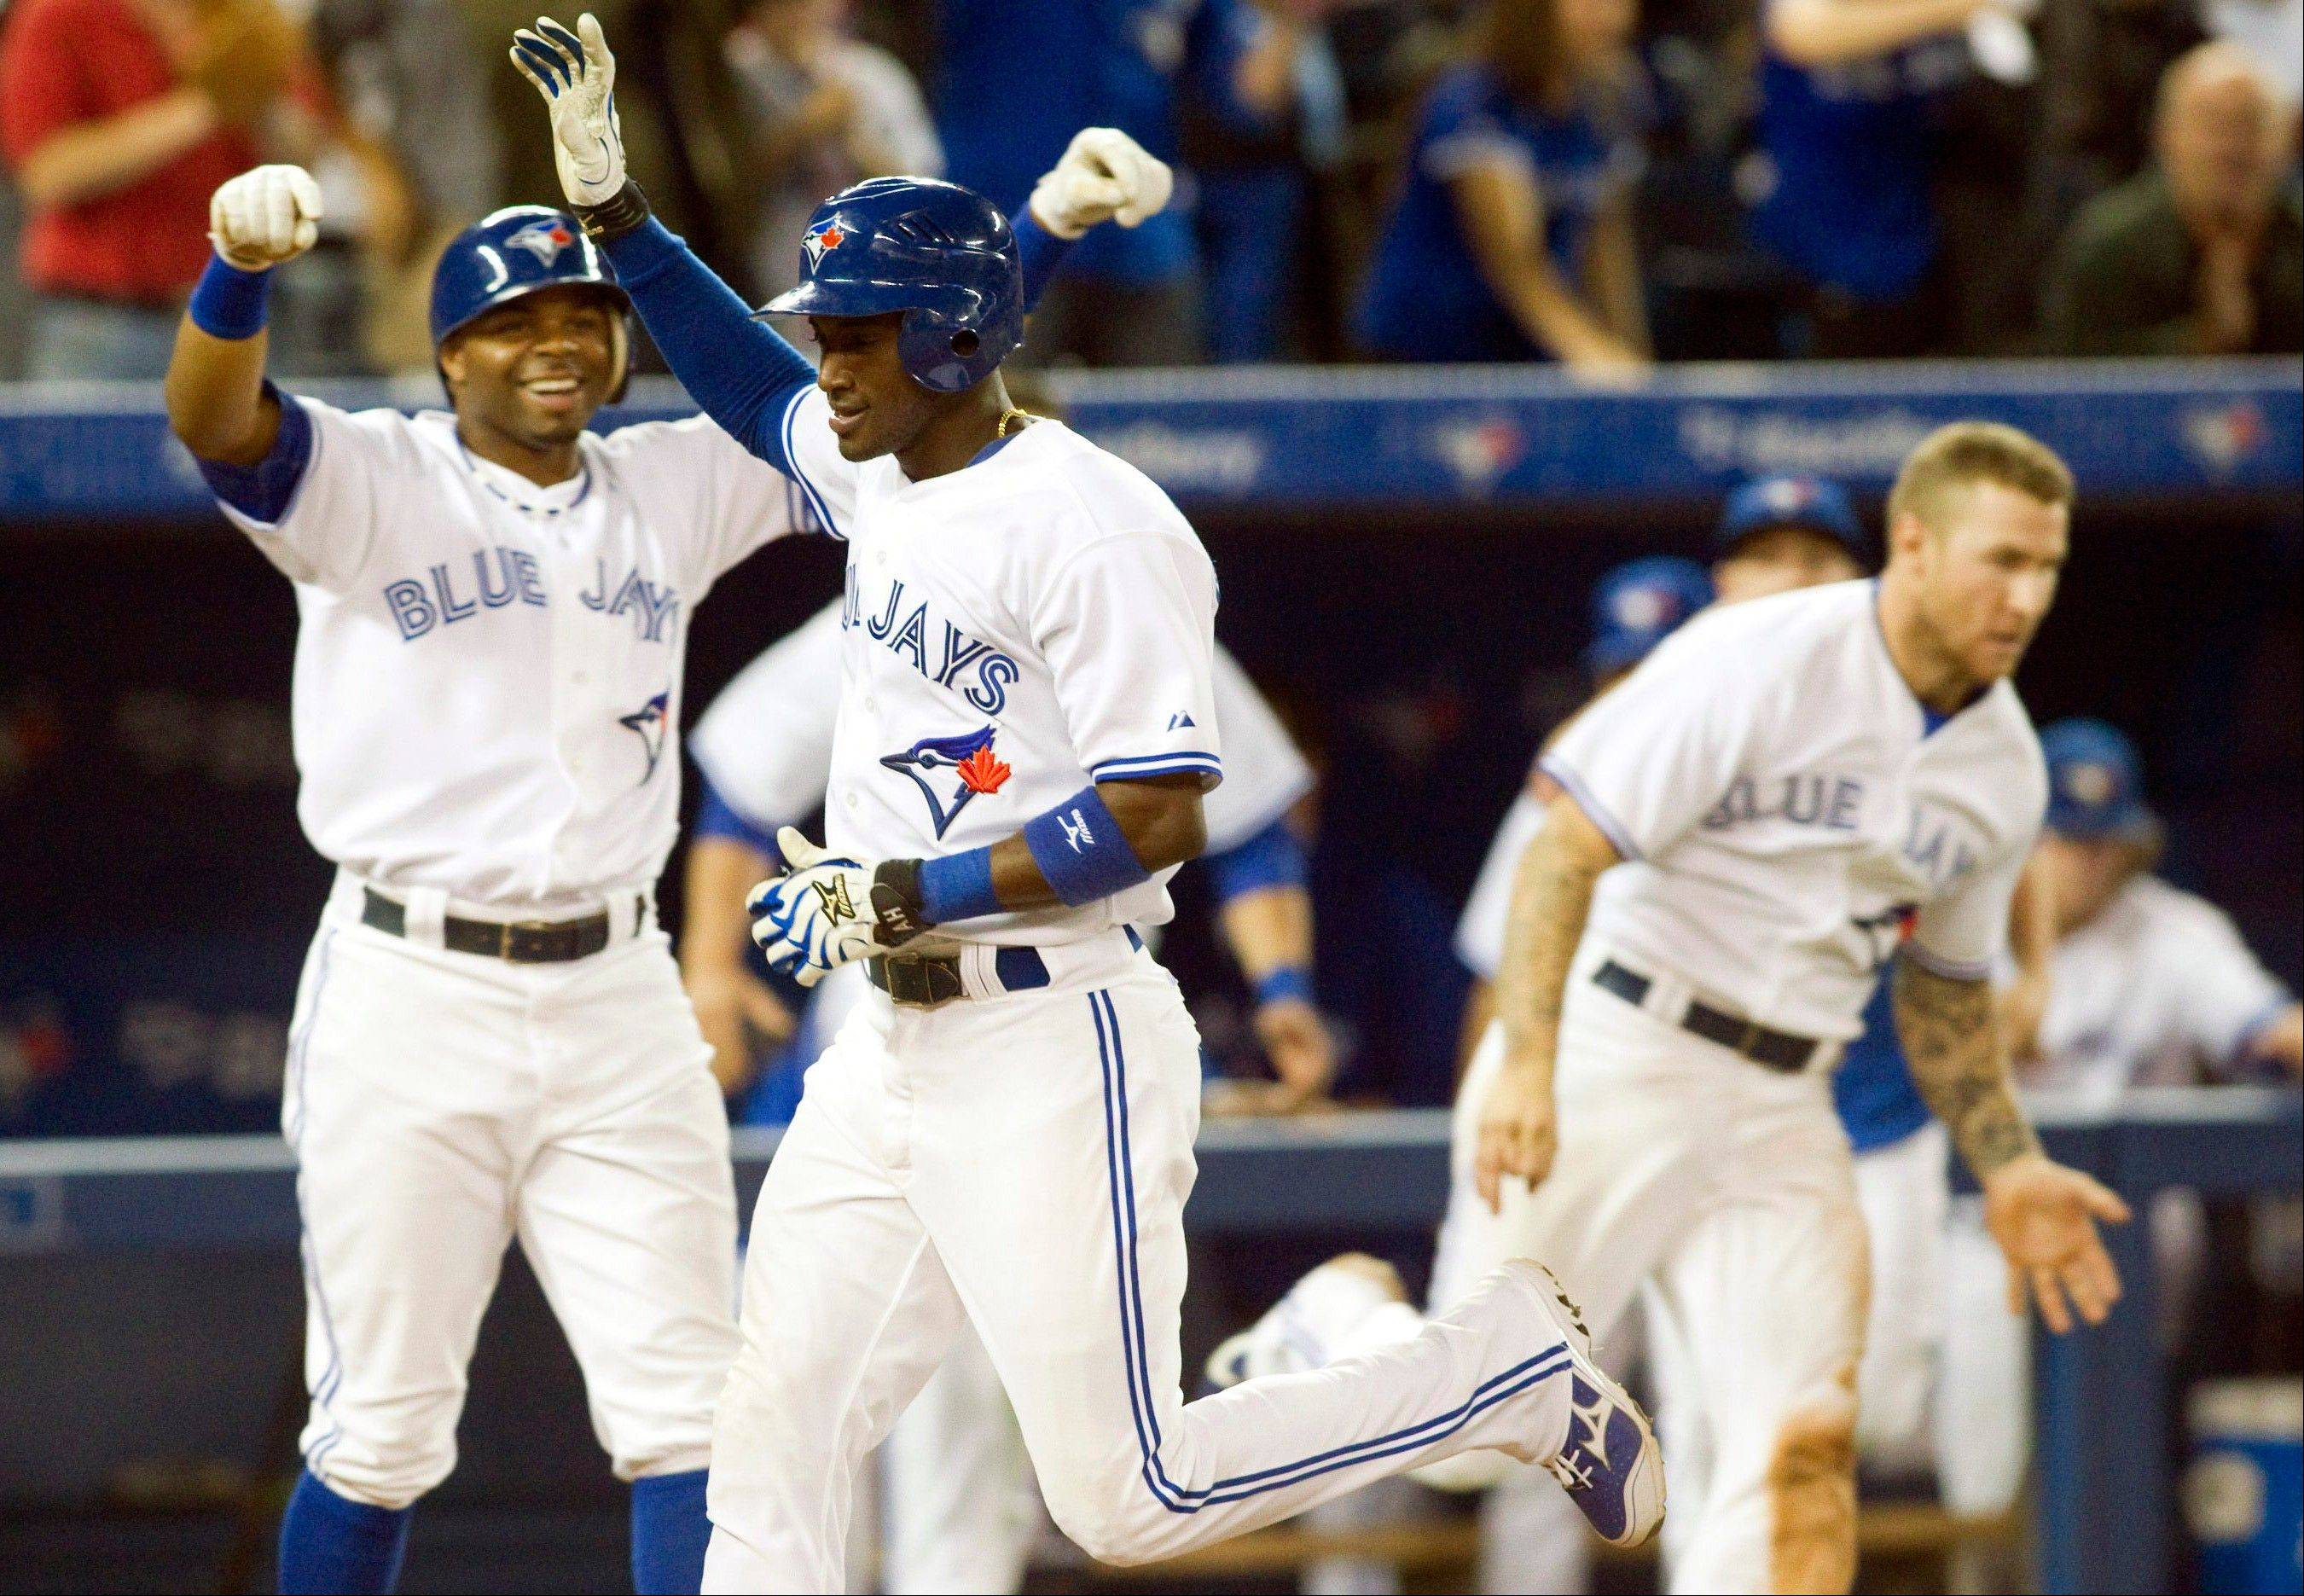 The Blue Jays' Adeiny Hechavarria, center, celebrates scoring on Anthony Gose's hit a game-winning single against the Minnesota Twins during the 10th inning Monday in Toronto.